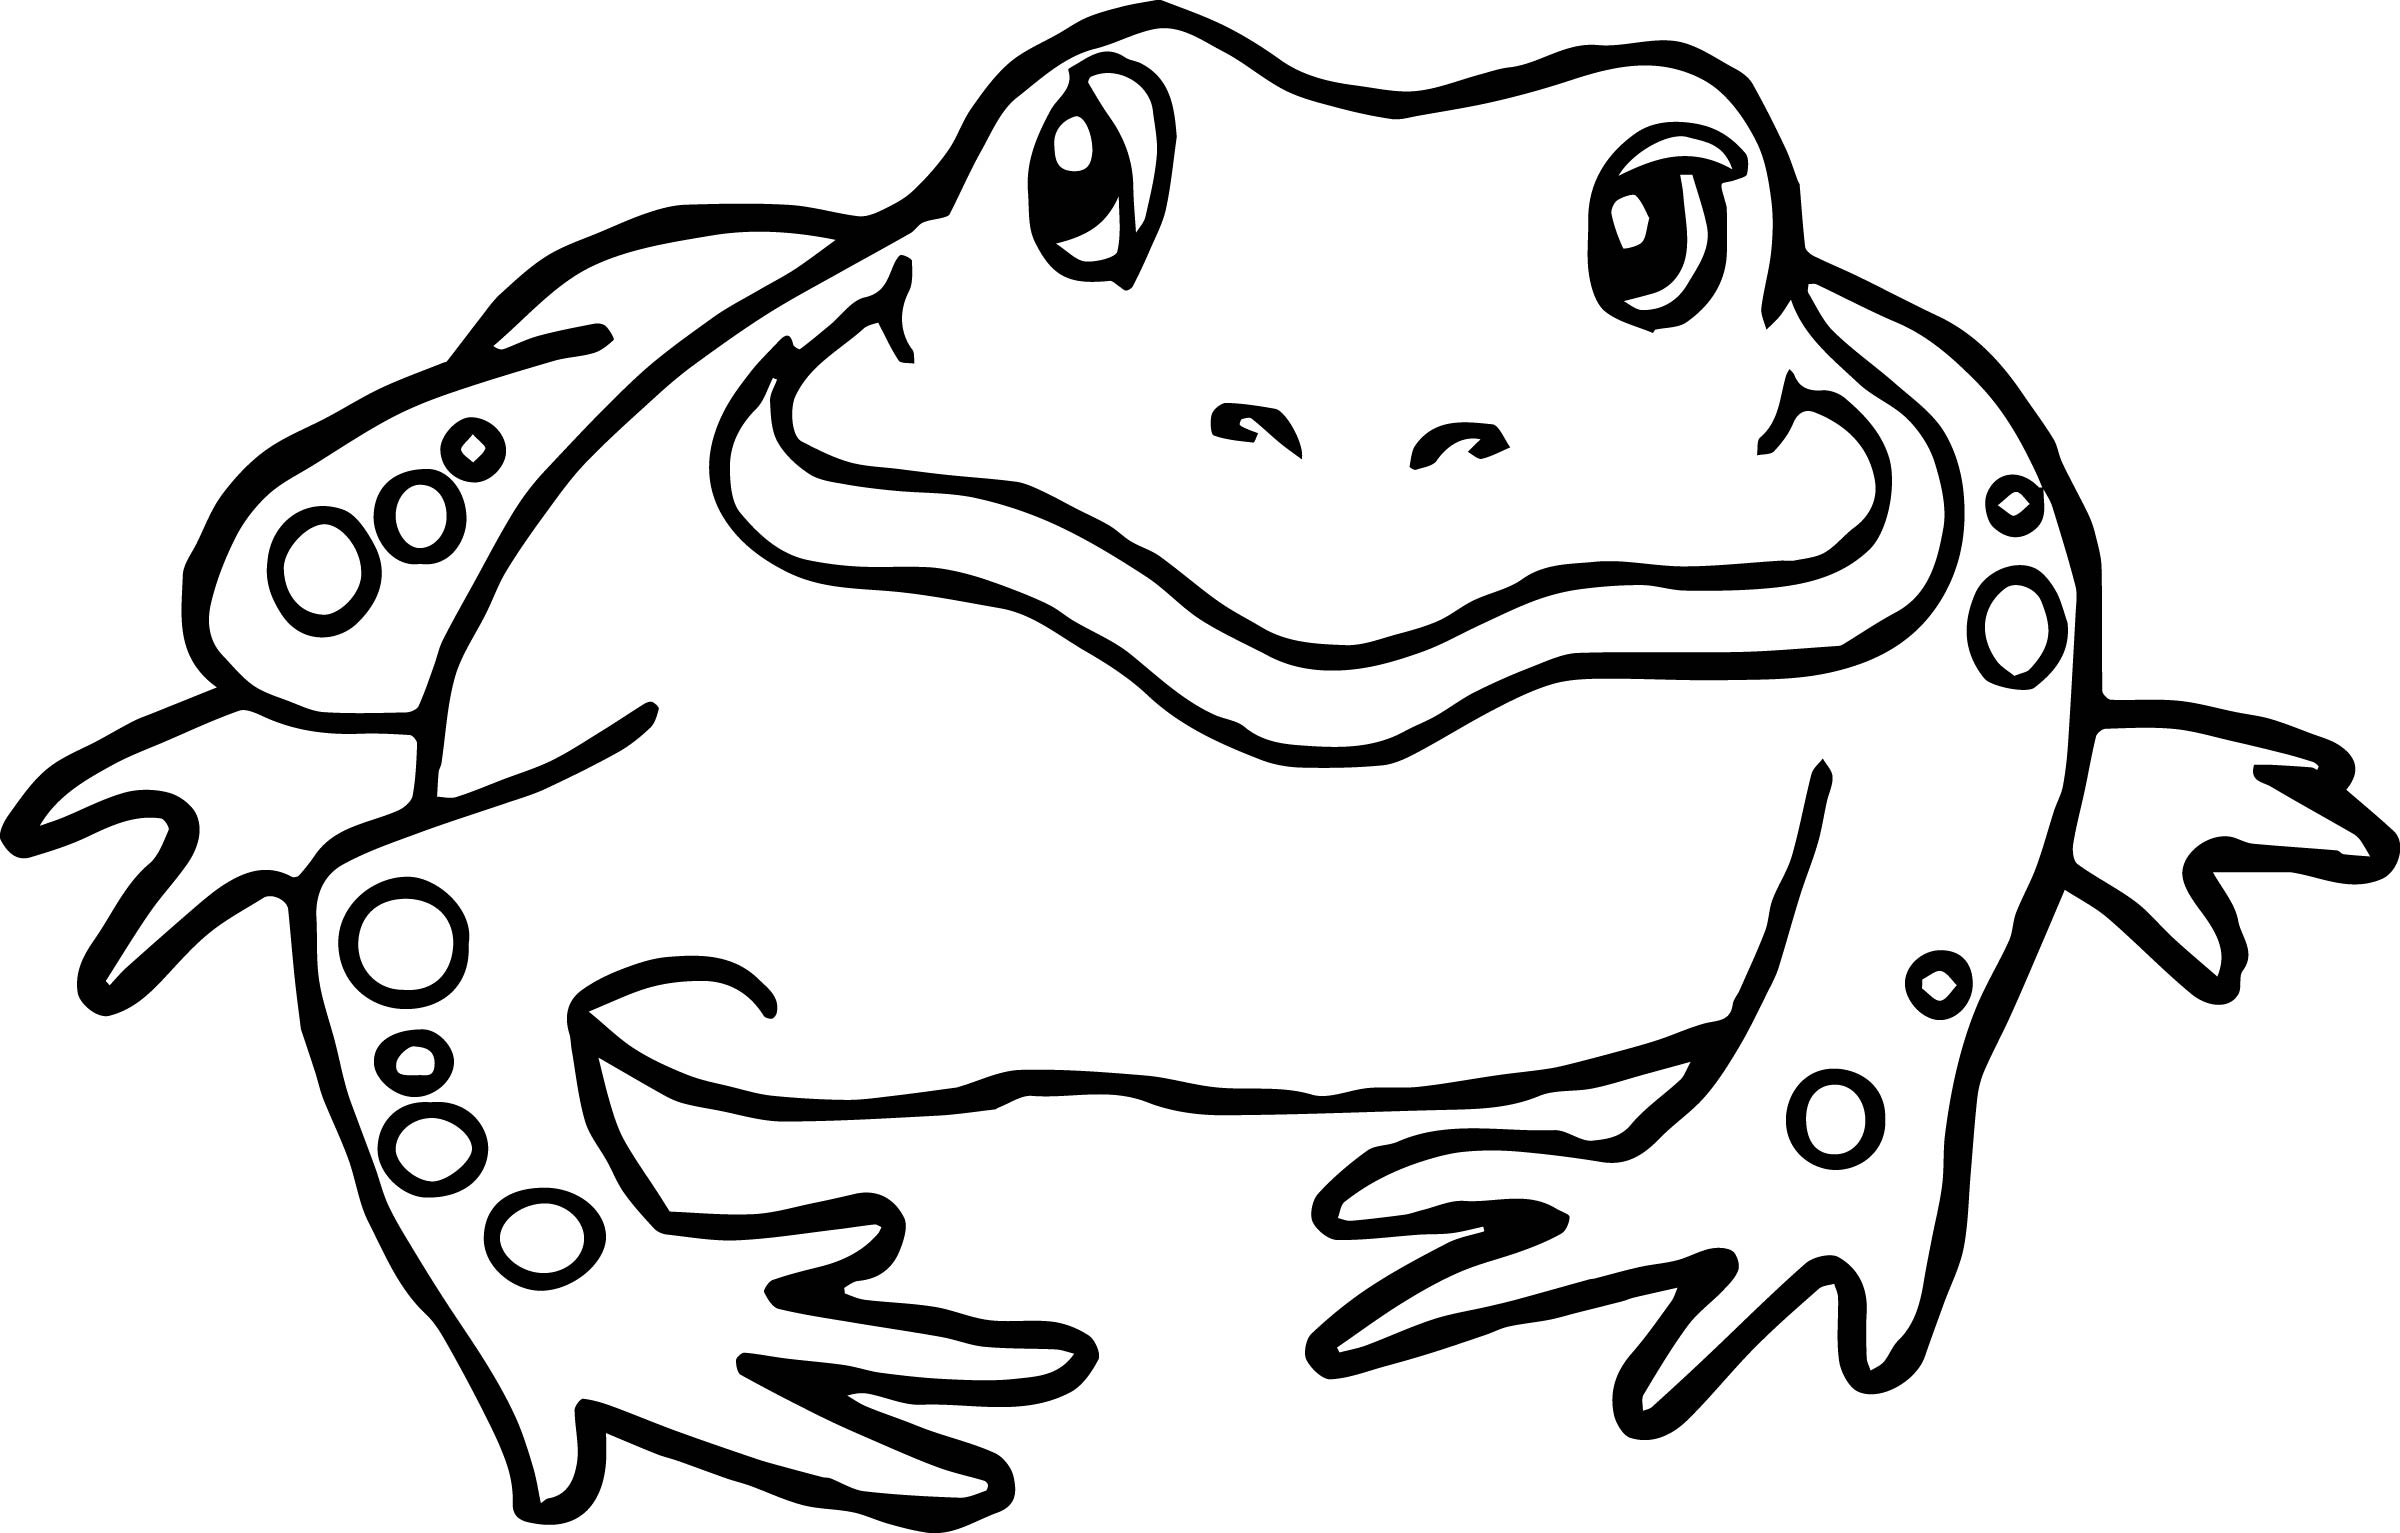 20 Free Printable Frog Coloring Pages  EverFreeColoringcom